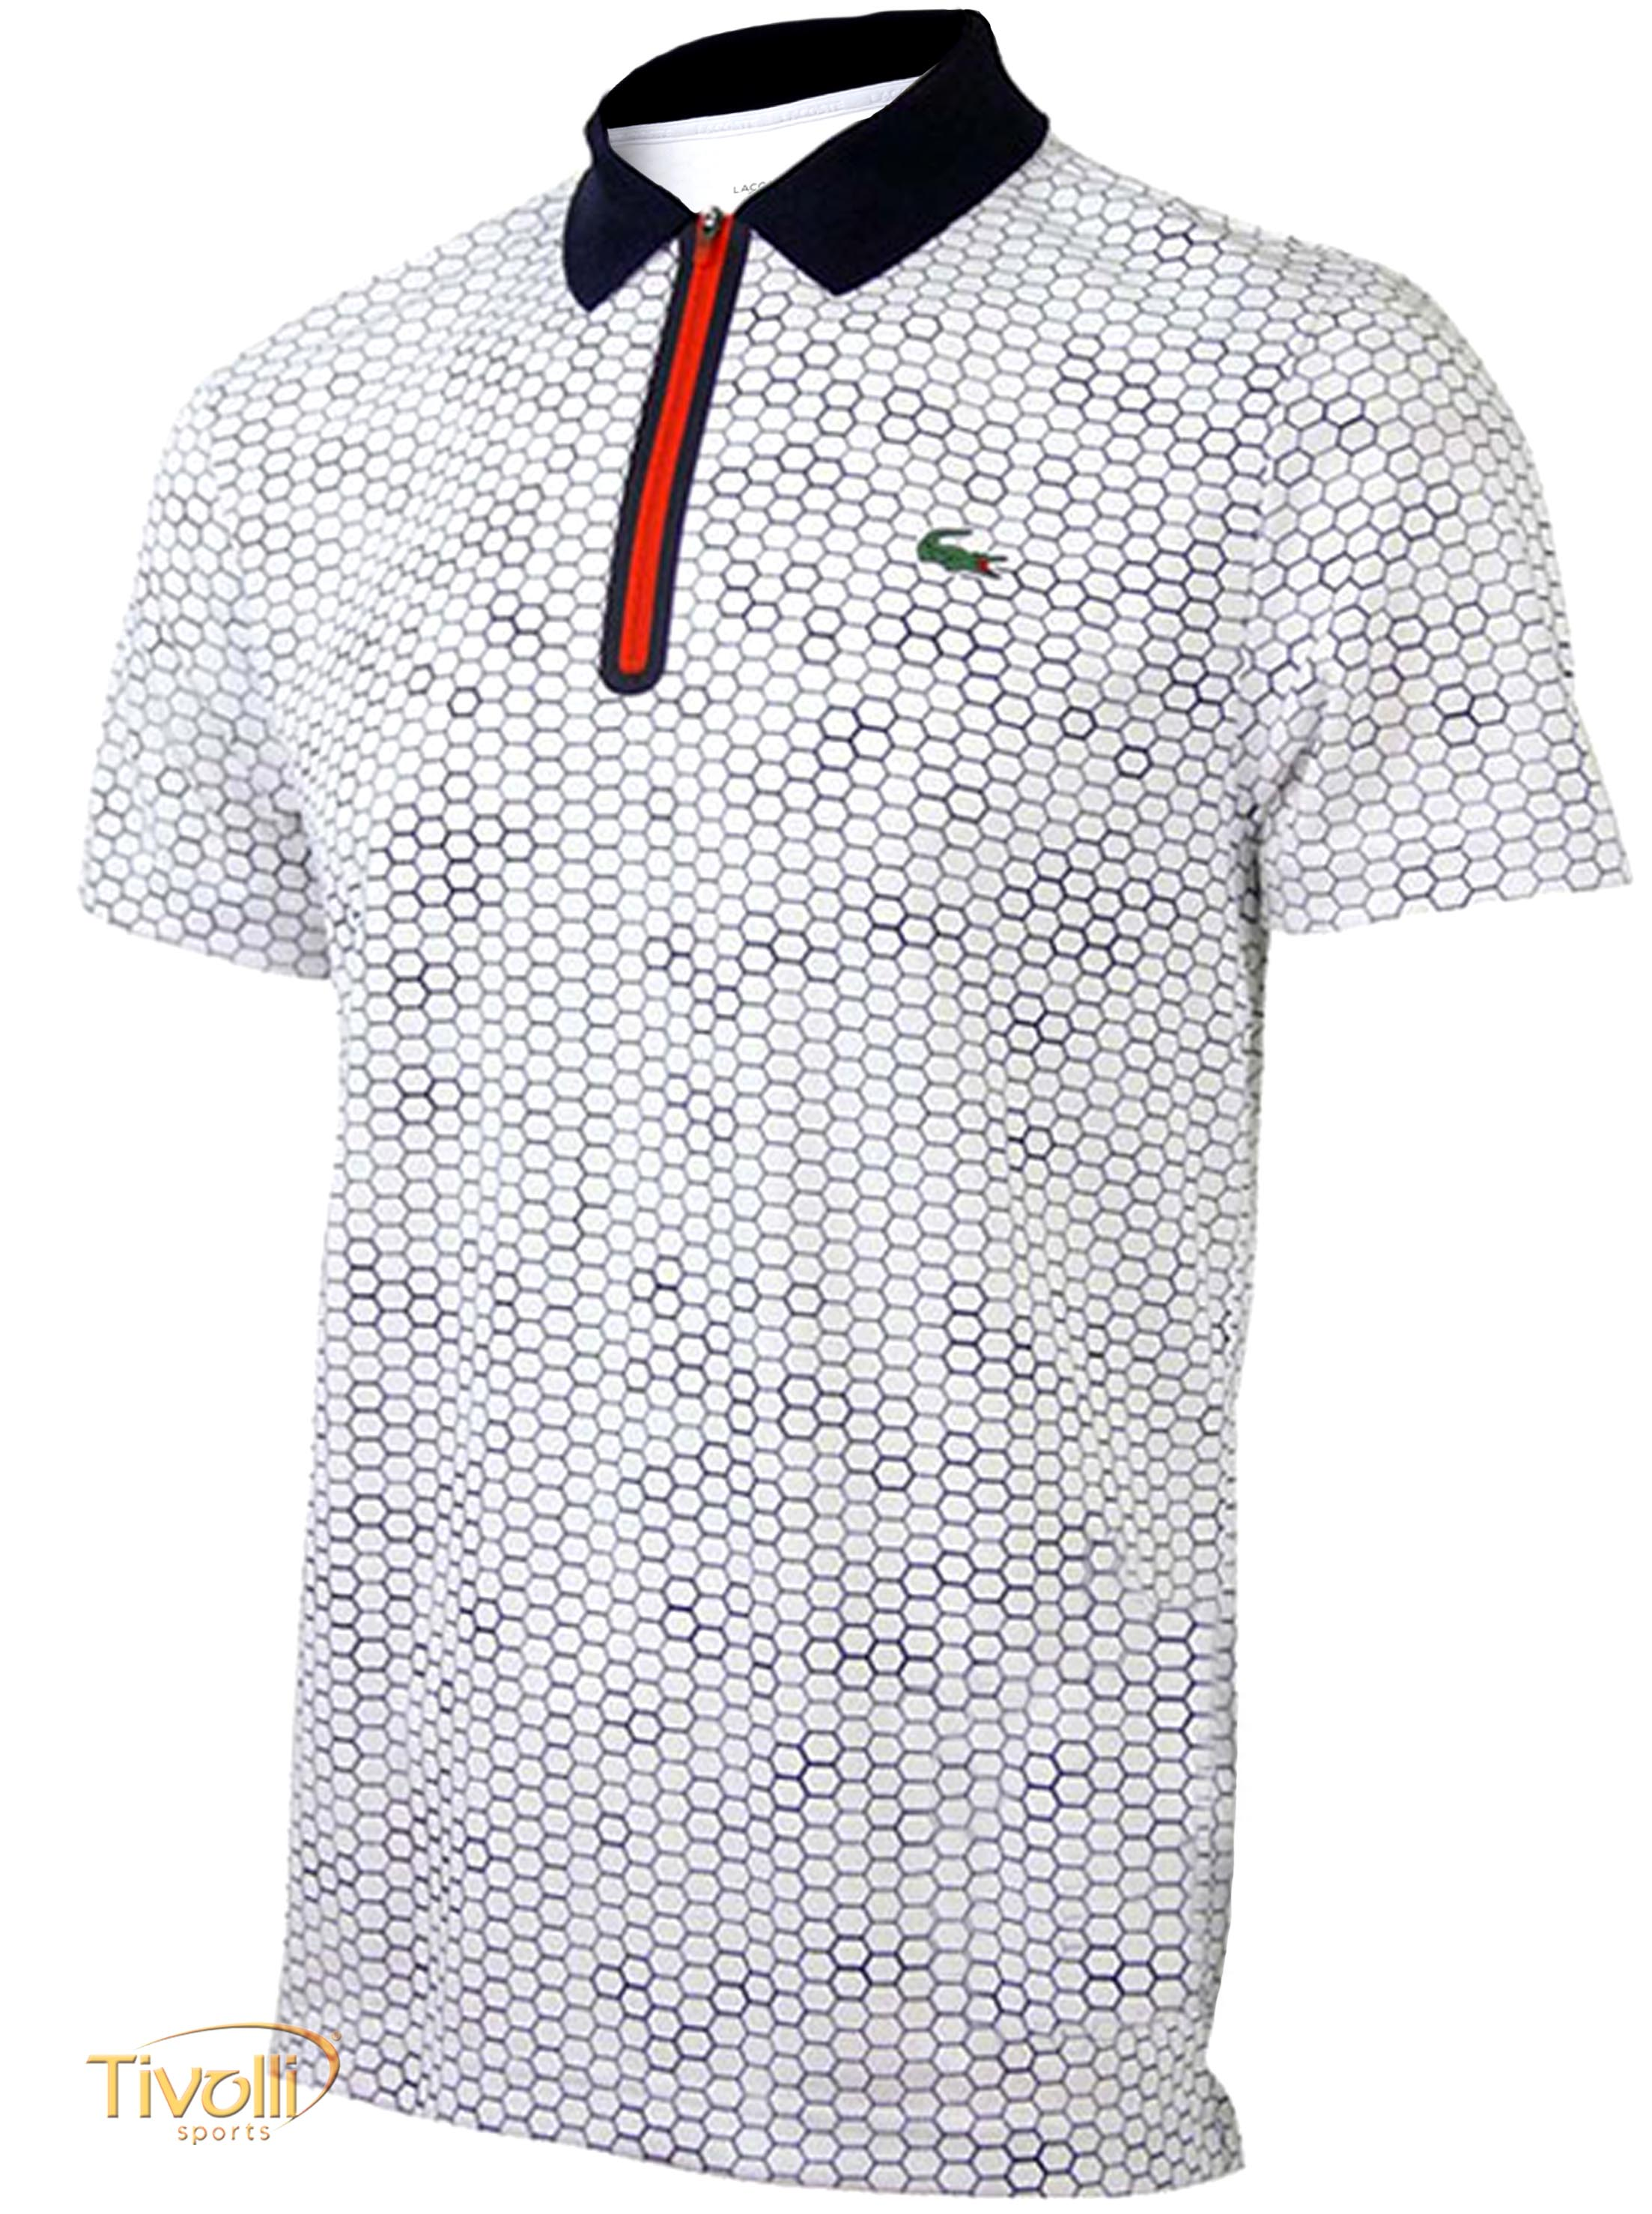 72e652ca6c8 Camisa Polo Lacoste Ultra Dry Fancy 1   Branca